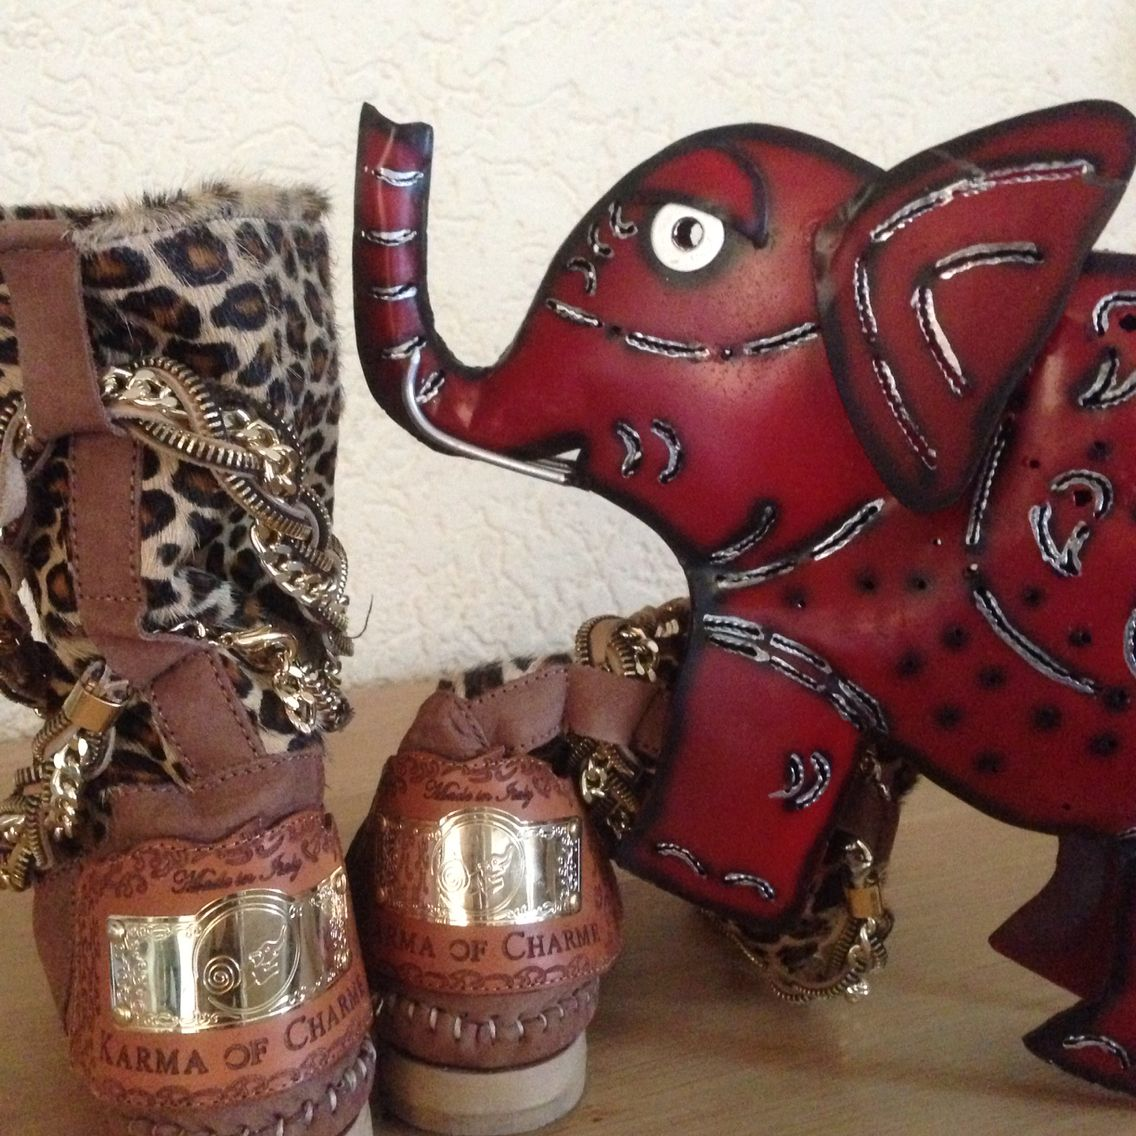 An elephant brings luck. The symbol of #karmaofcharme boots! @karmaofficial @Carlalafashion @karmaboots